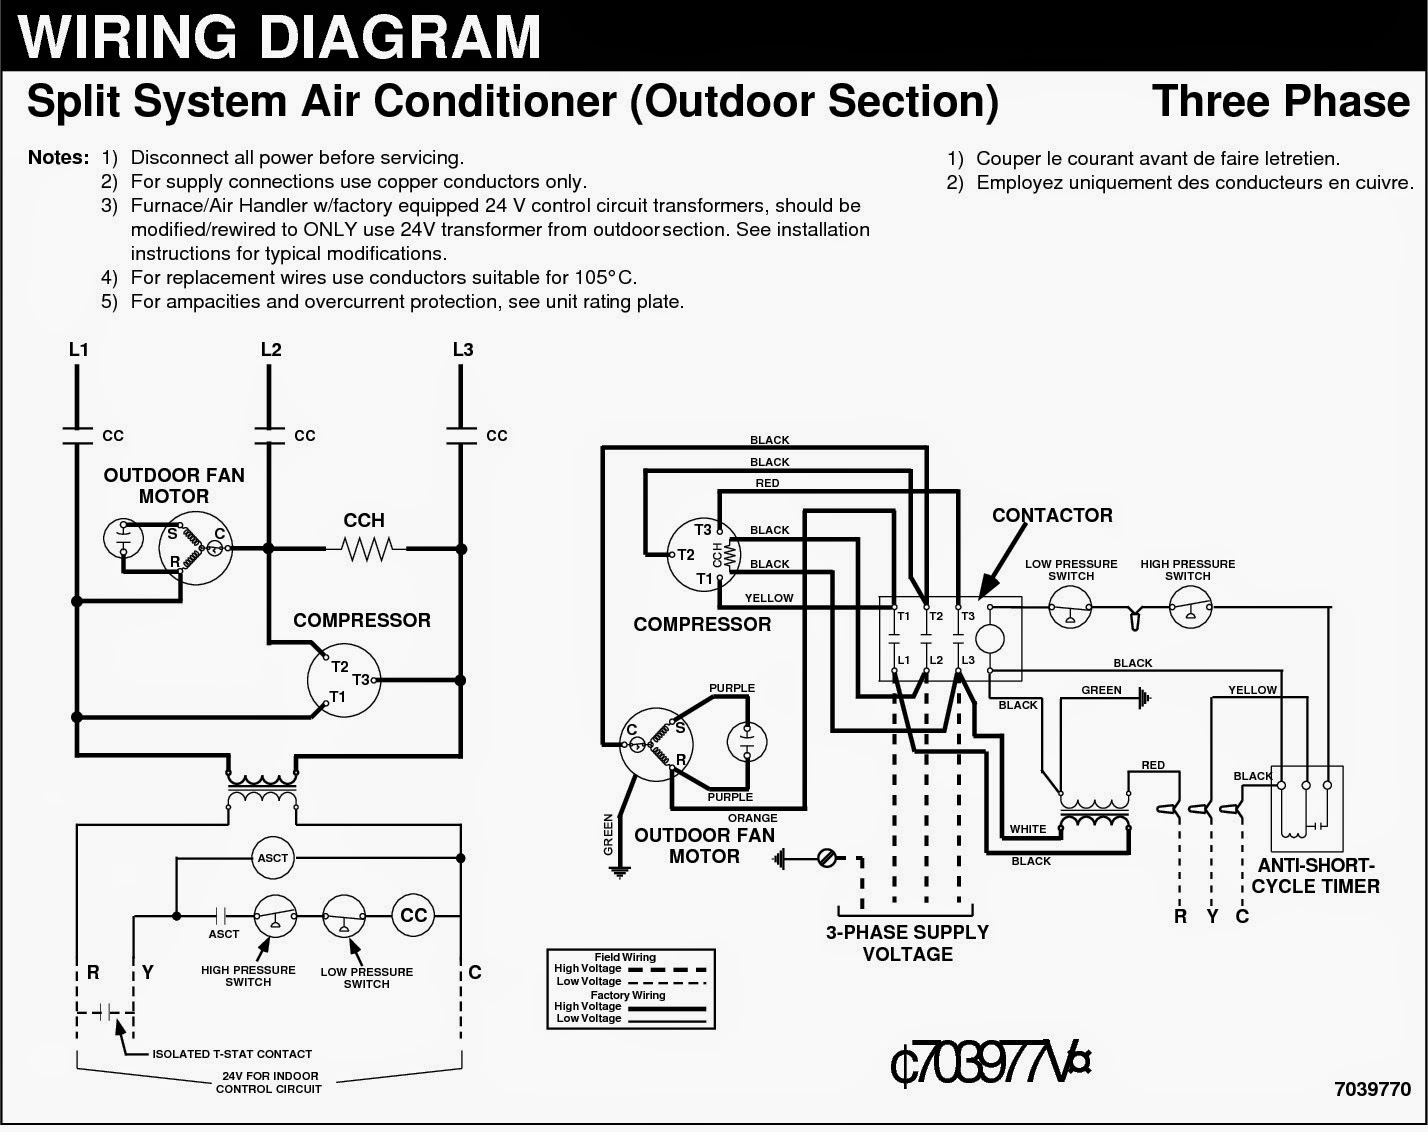 3+phase electrical wiring diagrams for air conditioning systems part two split ac wiring diagram at cita.asia